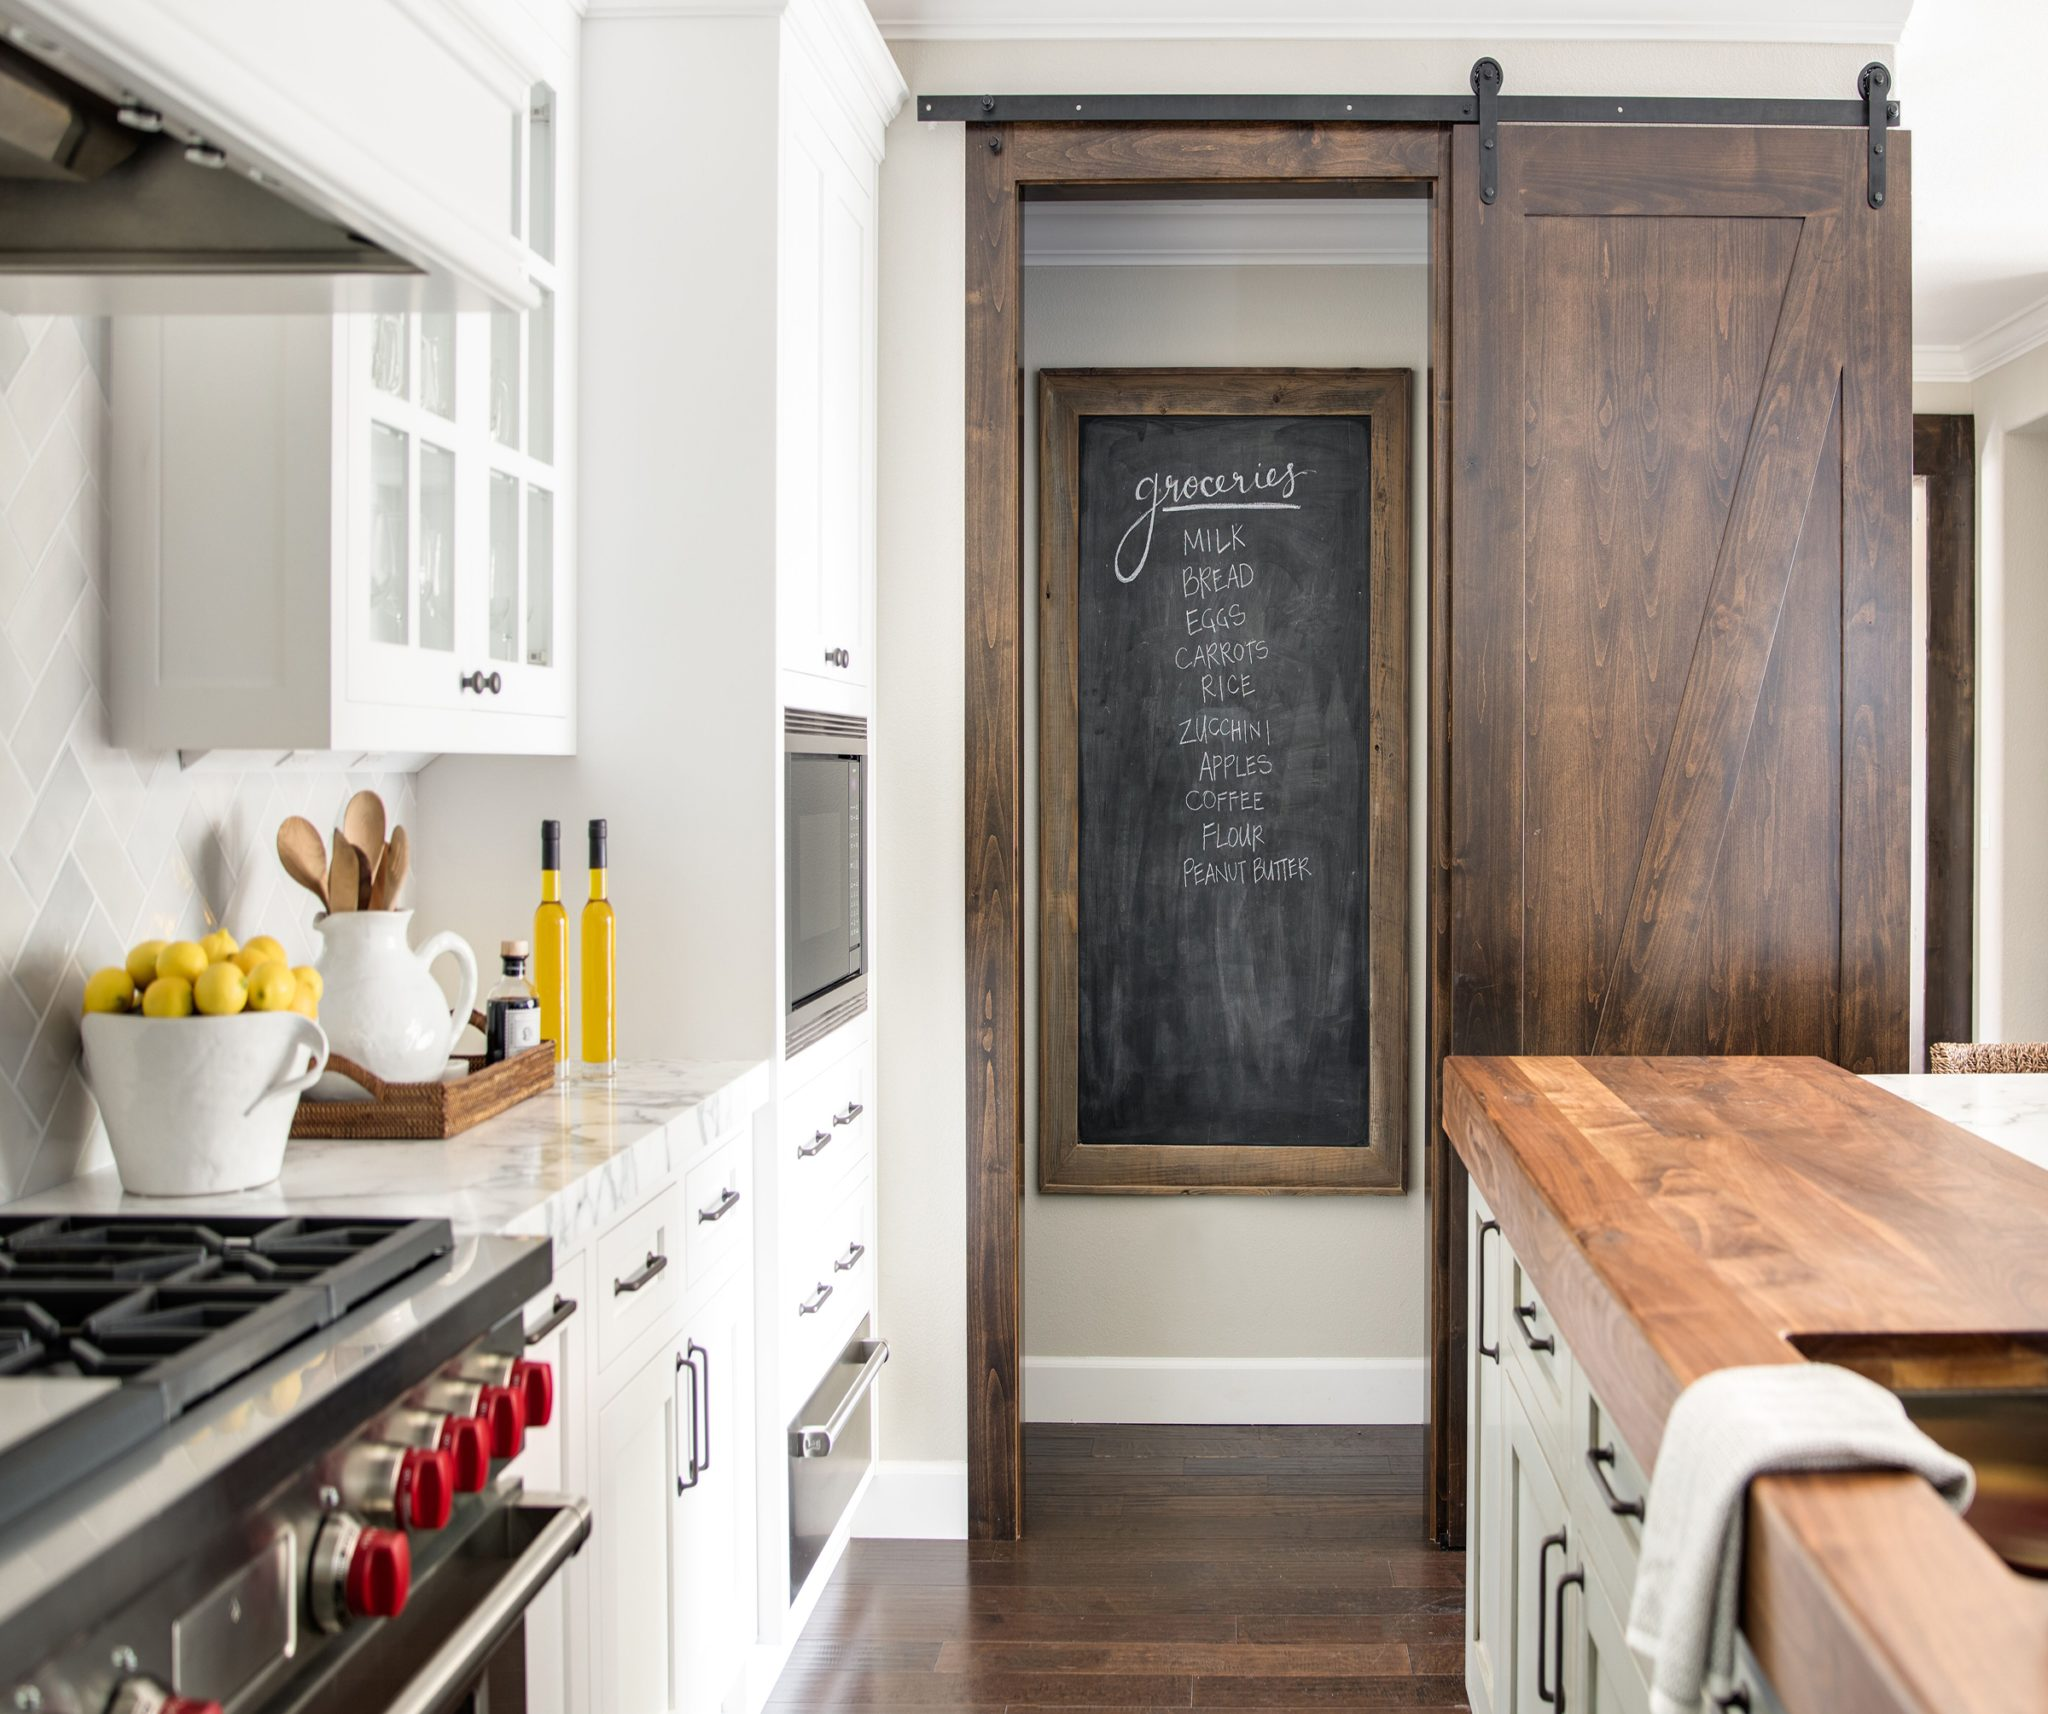 A barn-style pantry door in the kitchen and clever framed chalkboard for lists. by Kriste Michelini Interiors